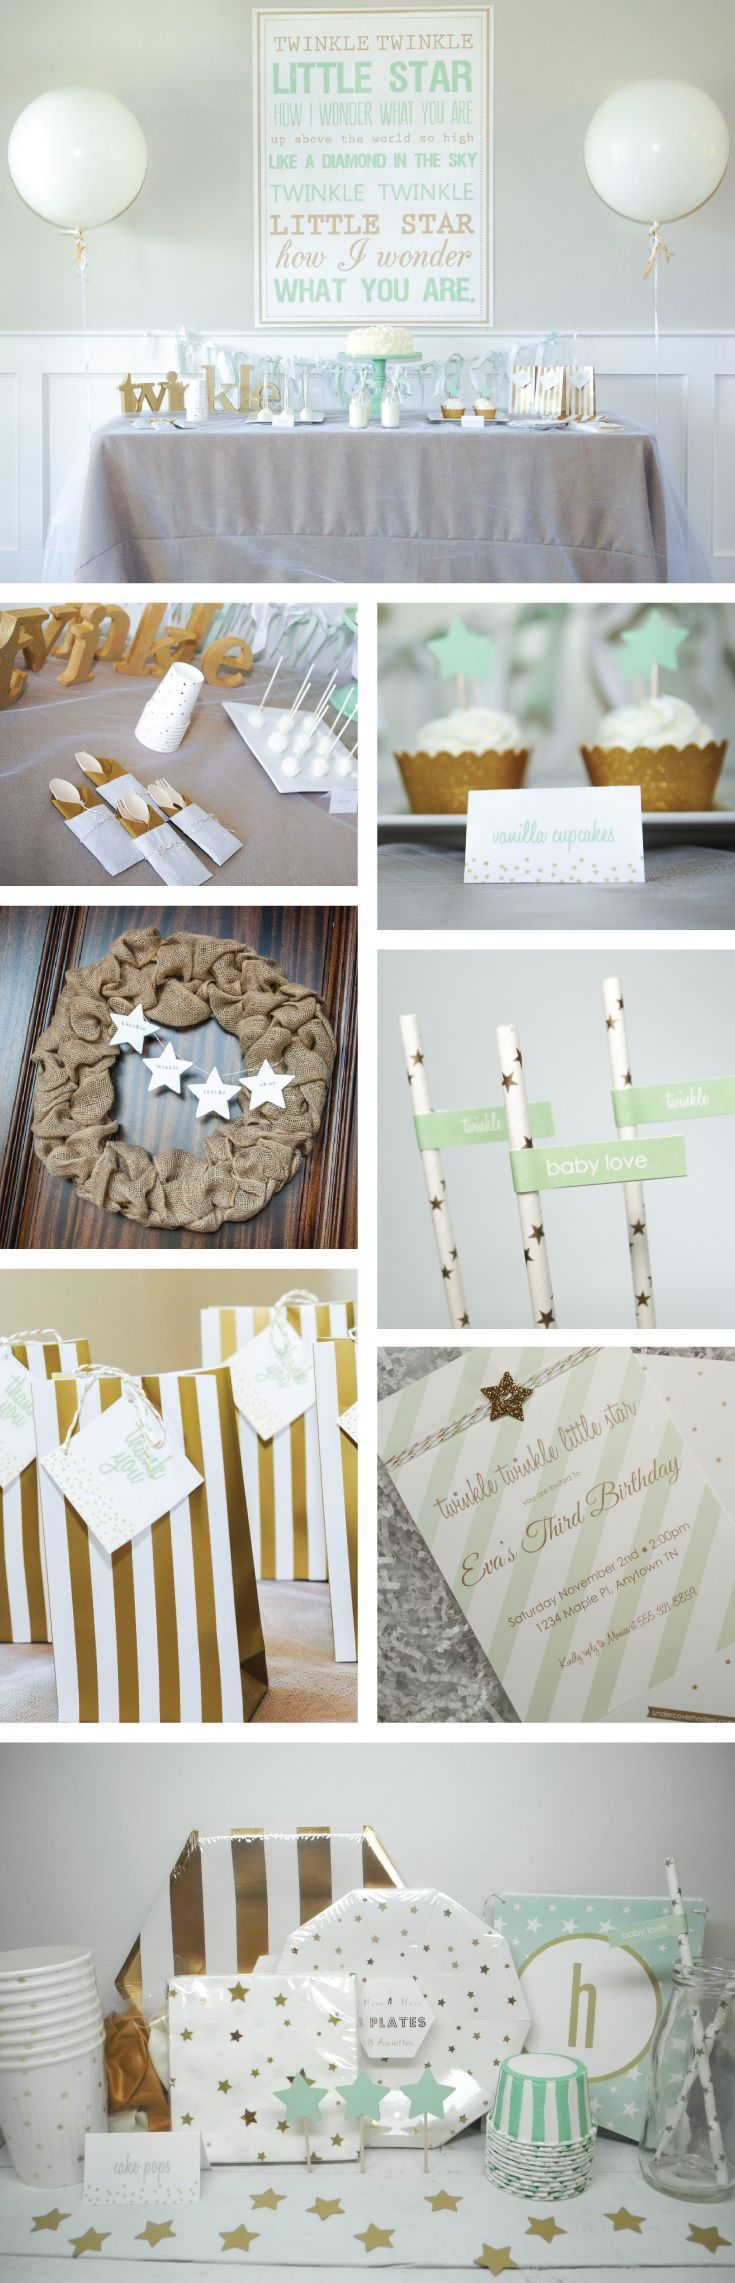 Twinkle twinkle little star themed birthday party or baby shower - decorations, tableware and table linen | Burlap and gold star party